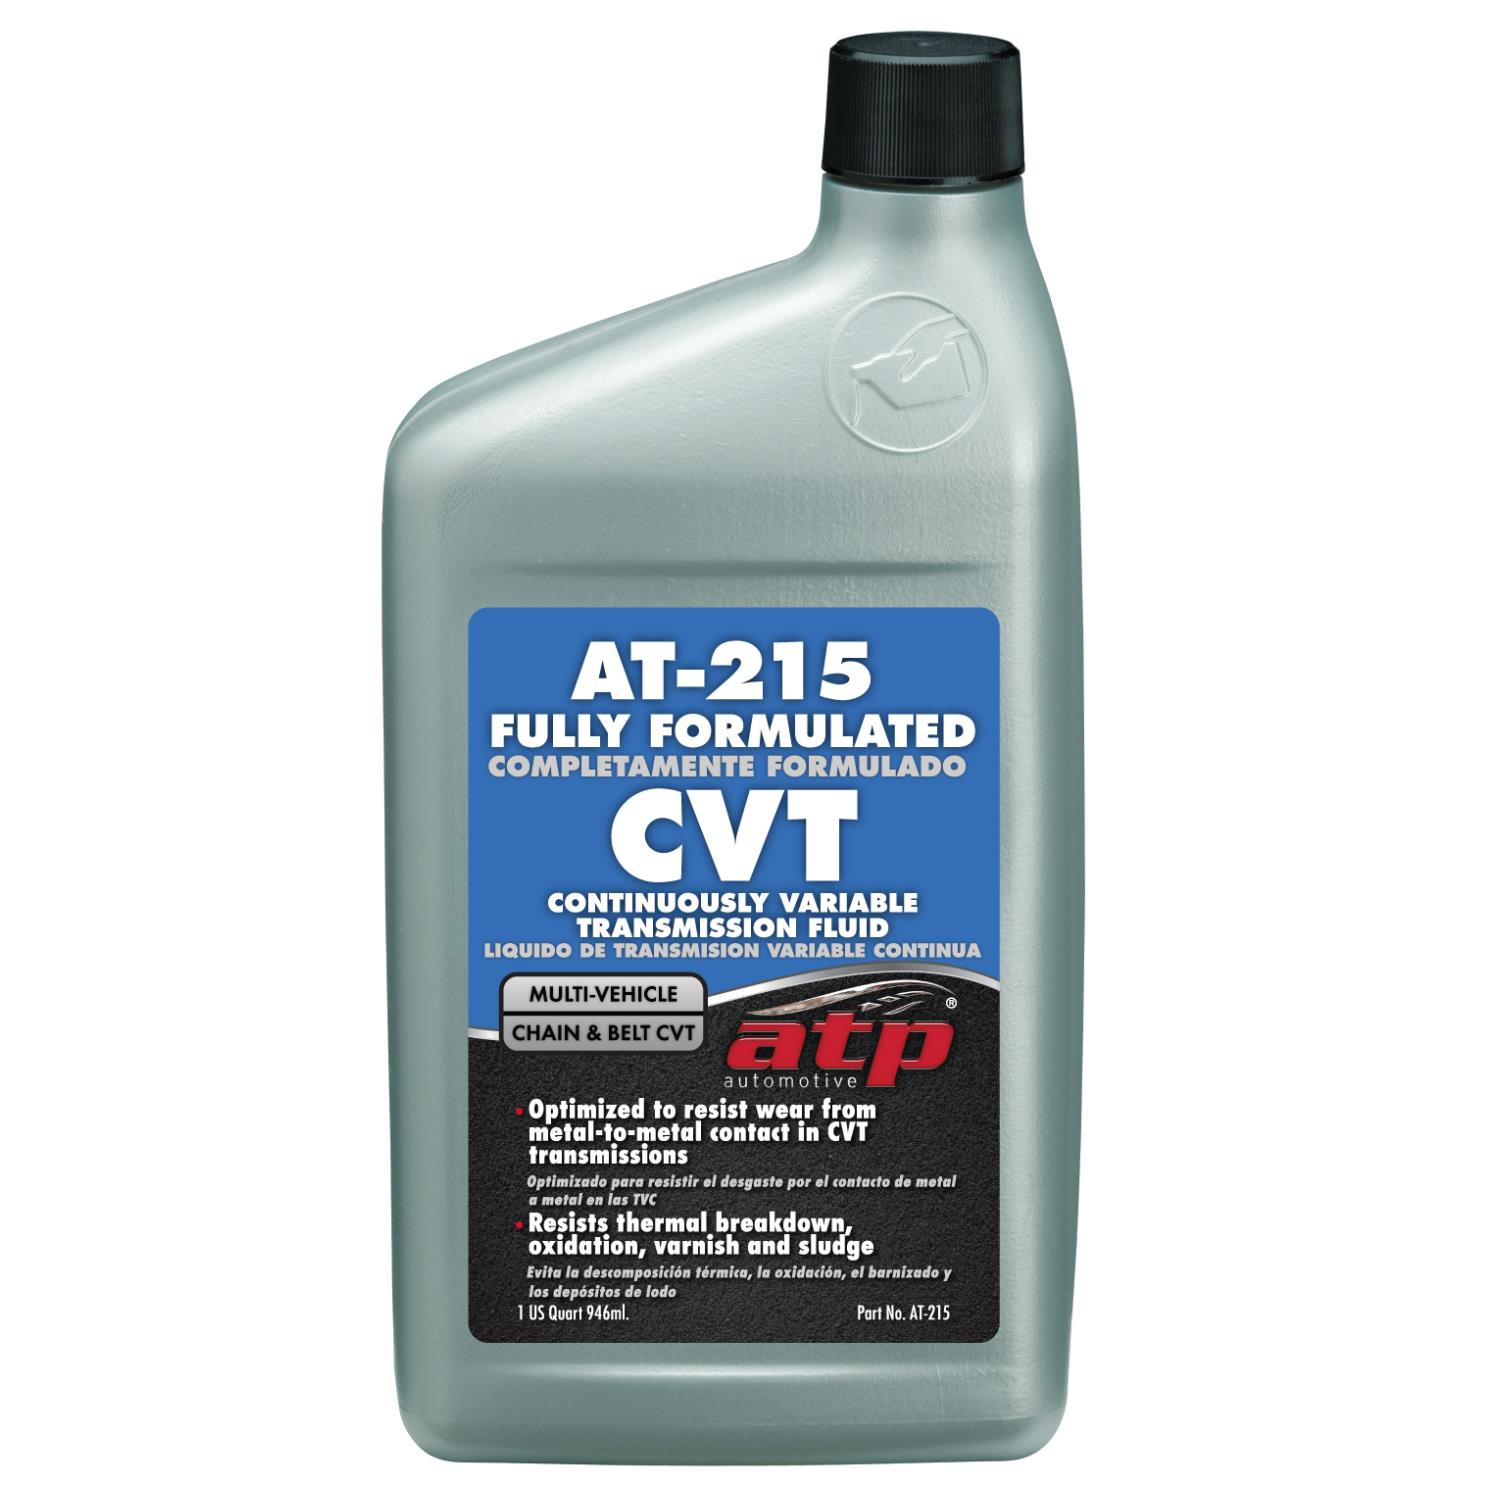 2004 saturn vue manual transmission fluid